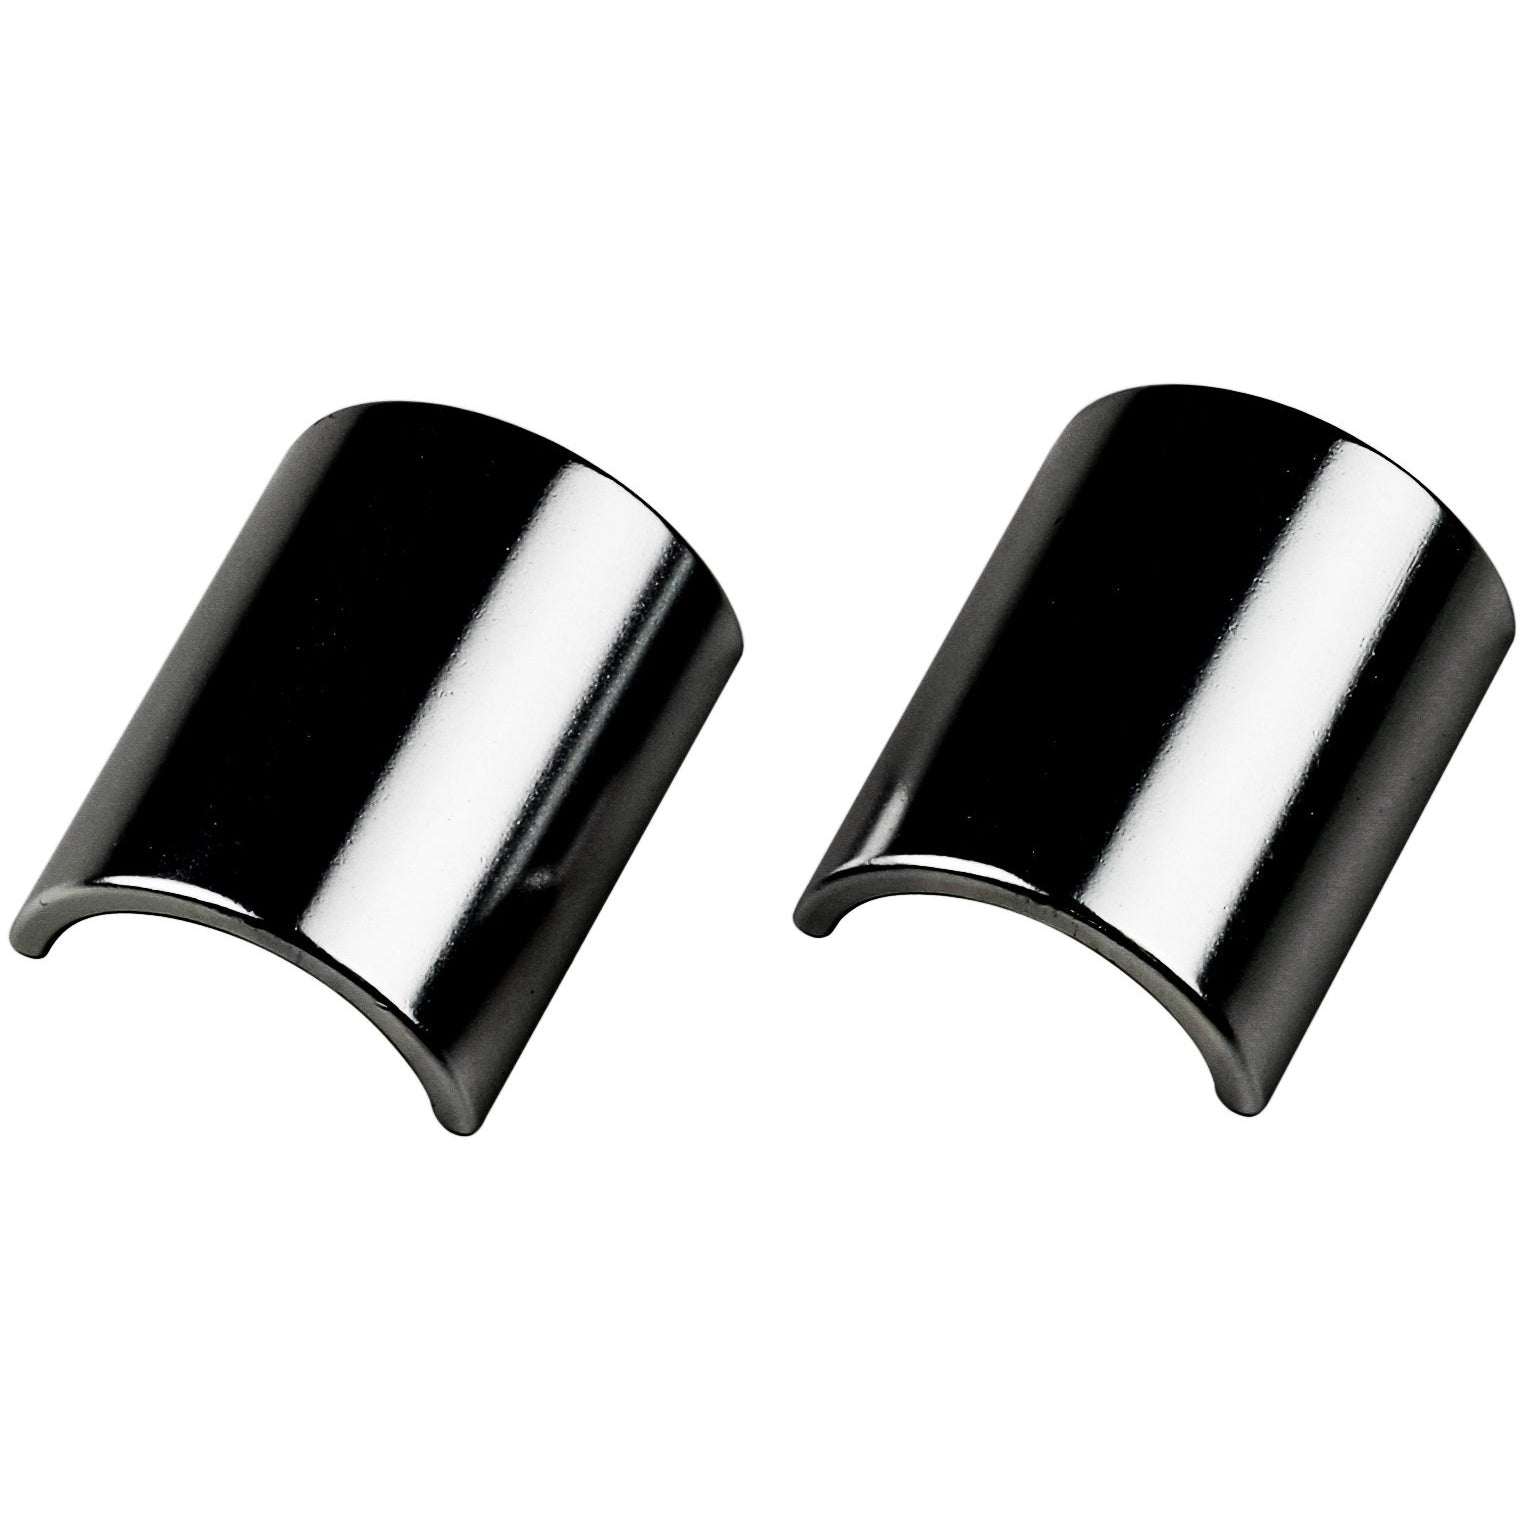 Alloy Handlebar Shims for 31.8 to 25.4mm (Two Piece)